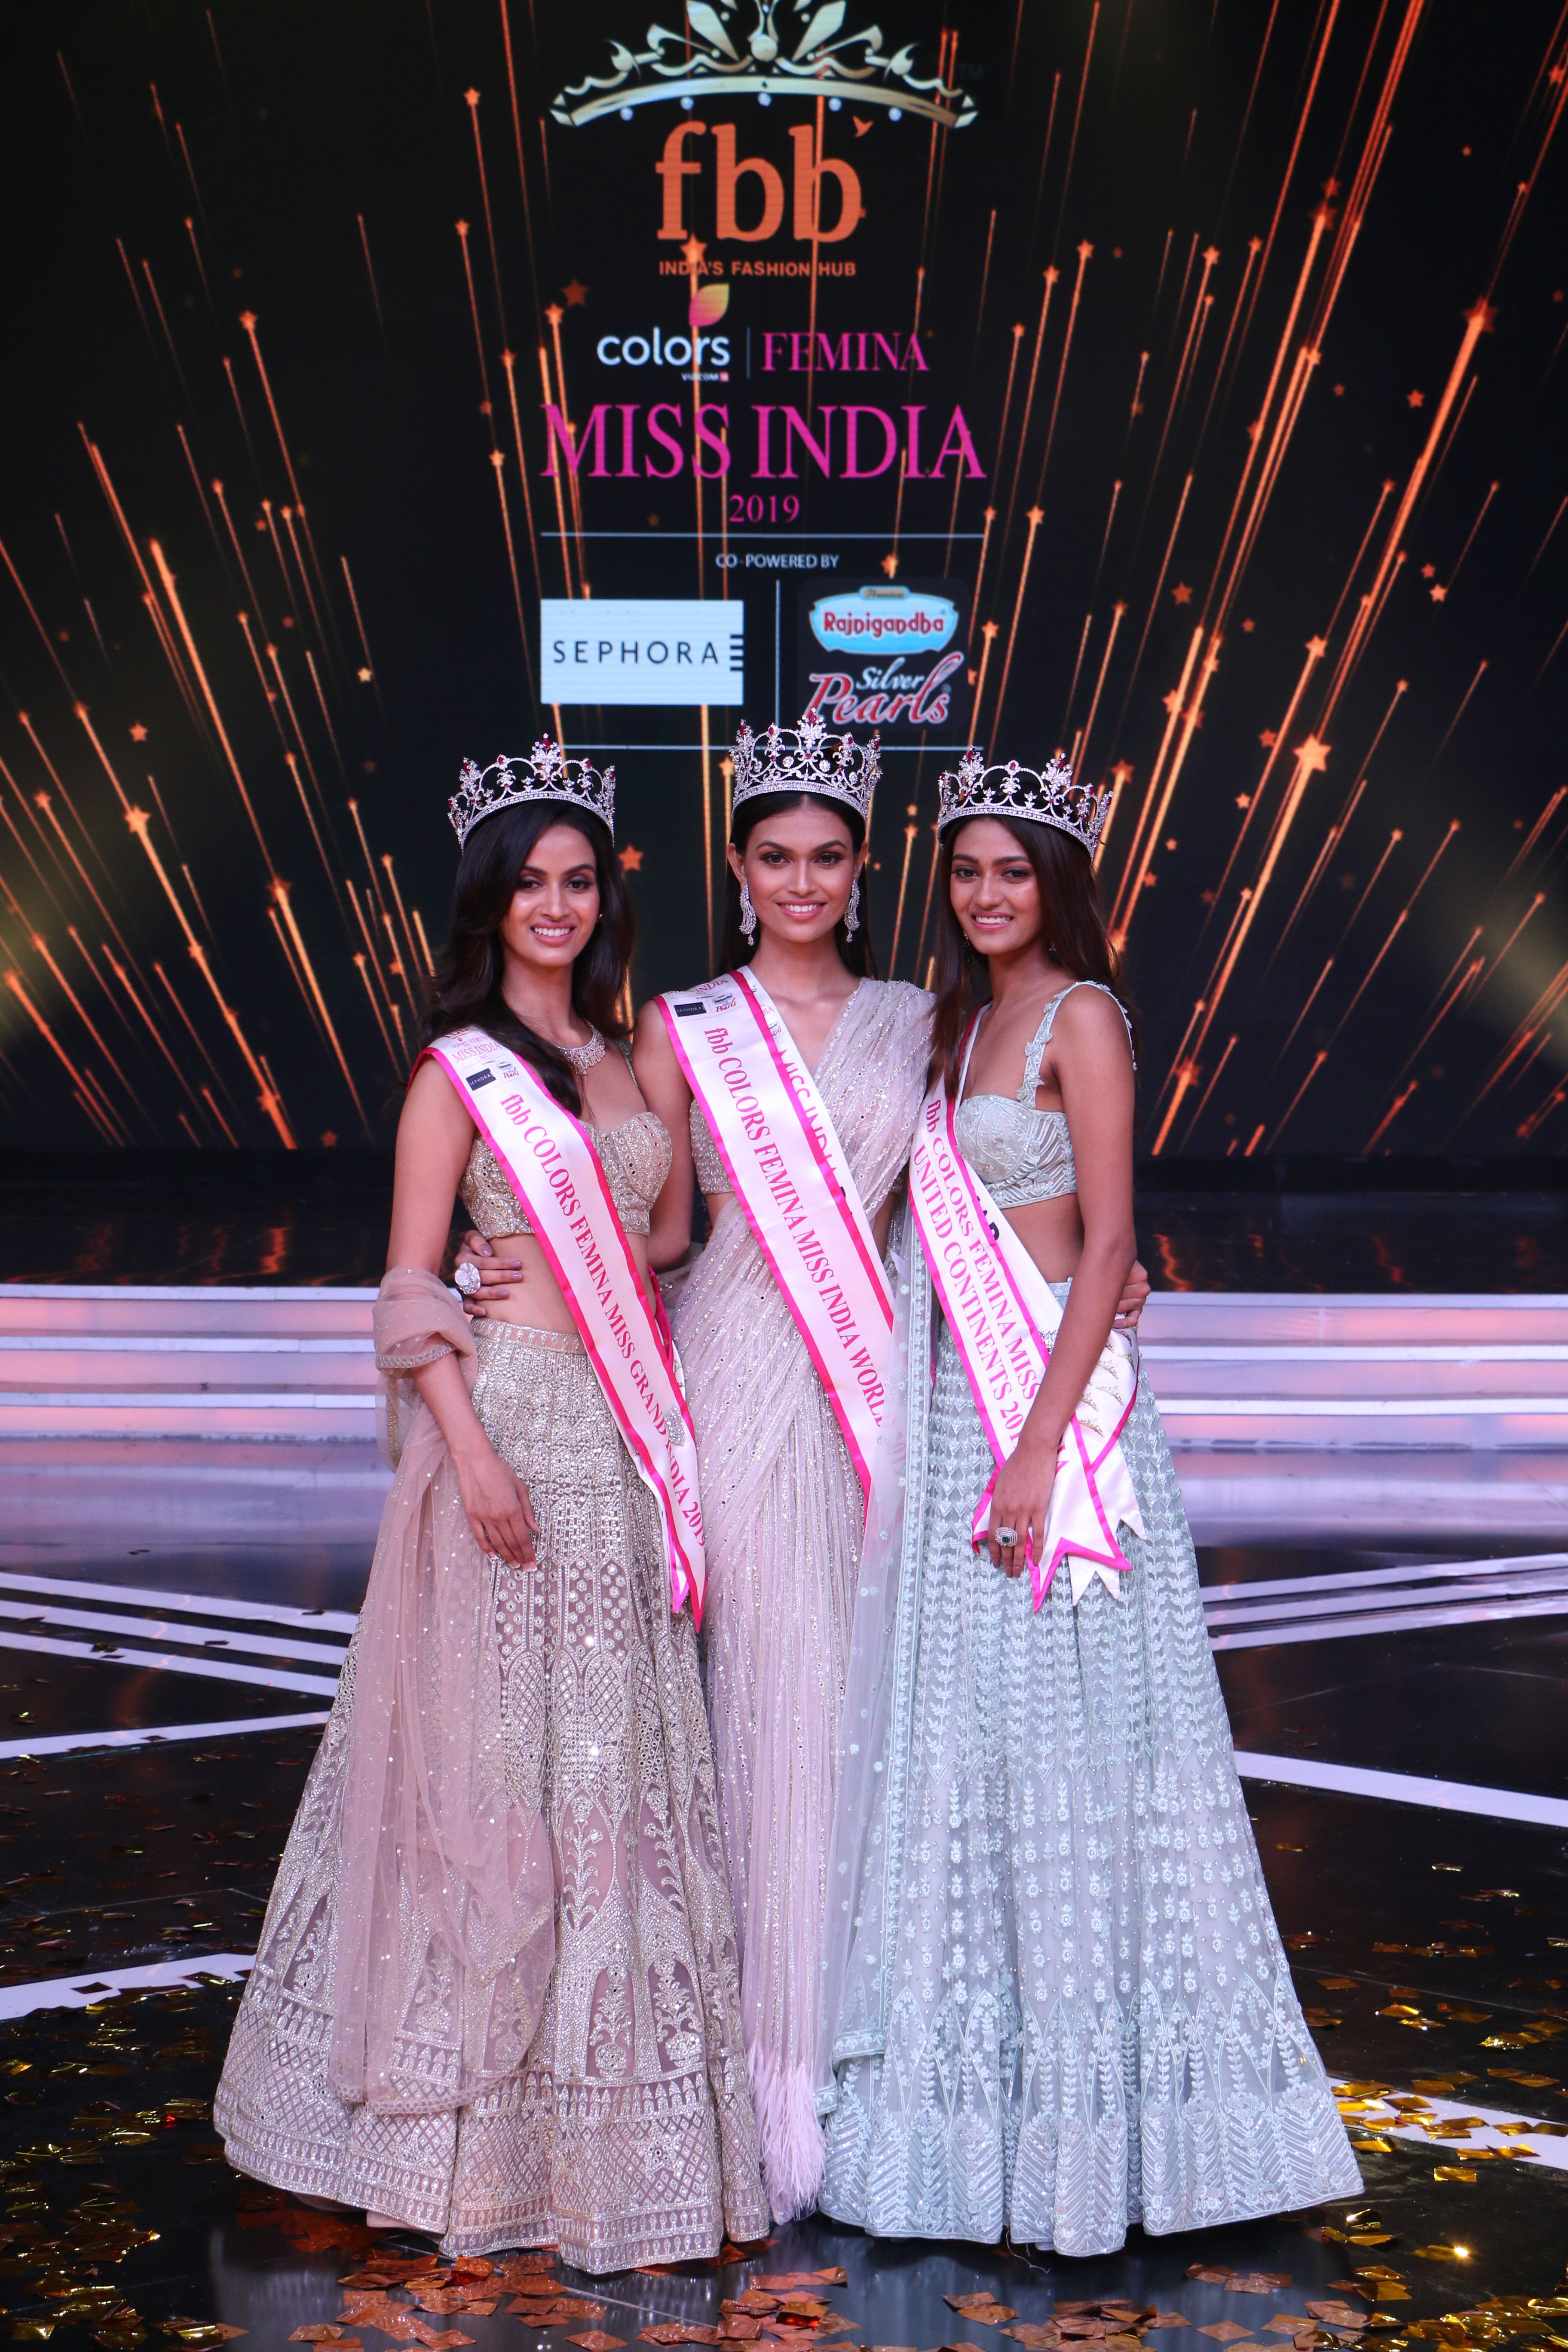 Dreams come true at the Miss India 2019 Grand Finale